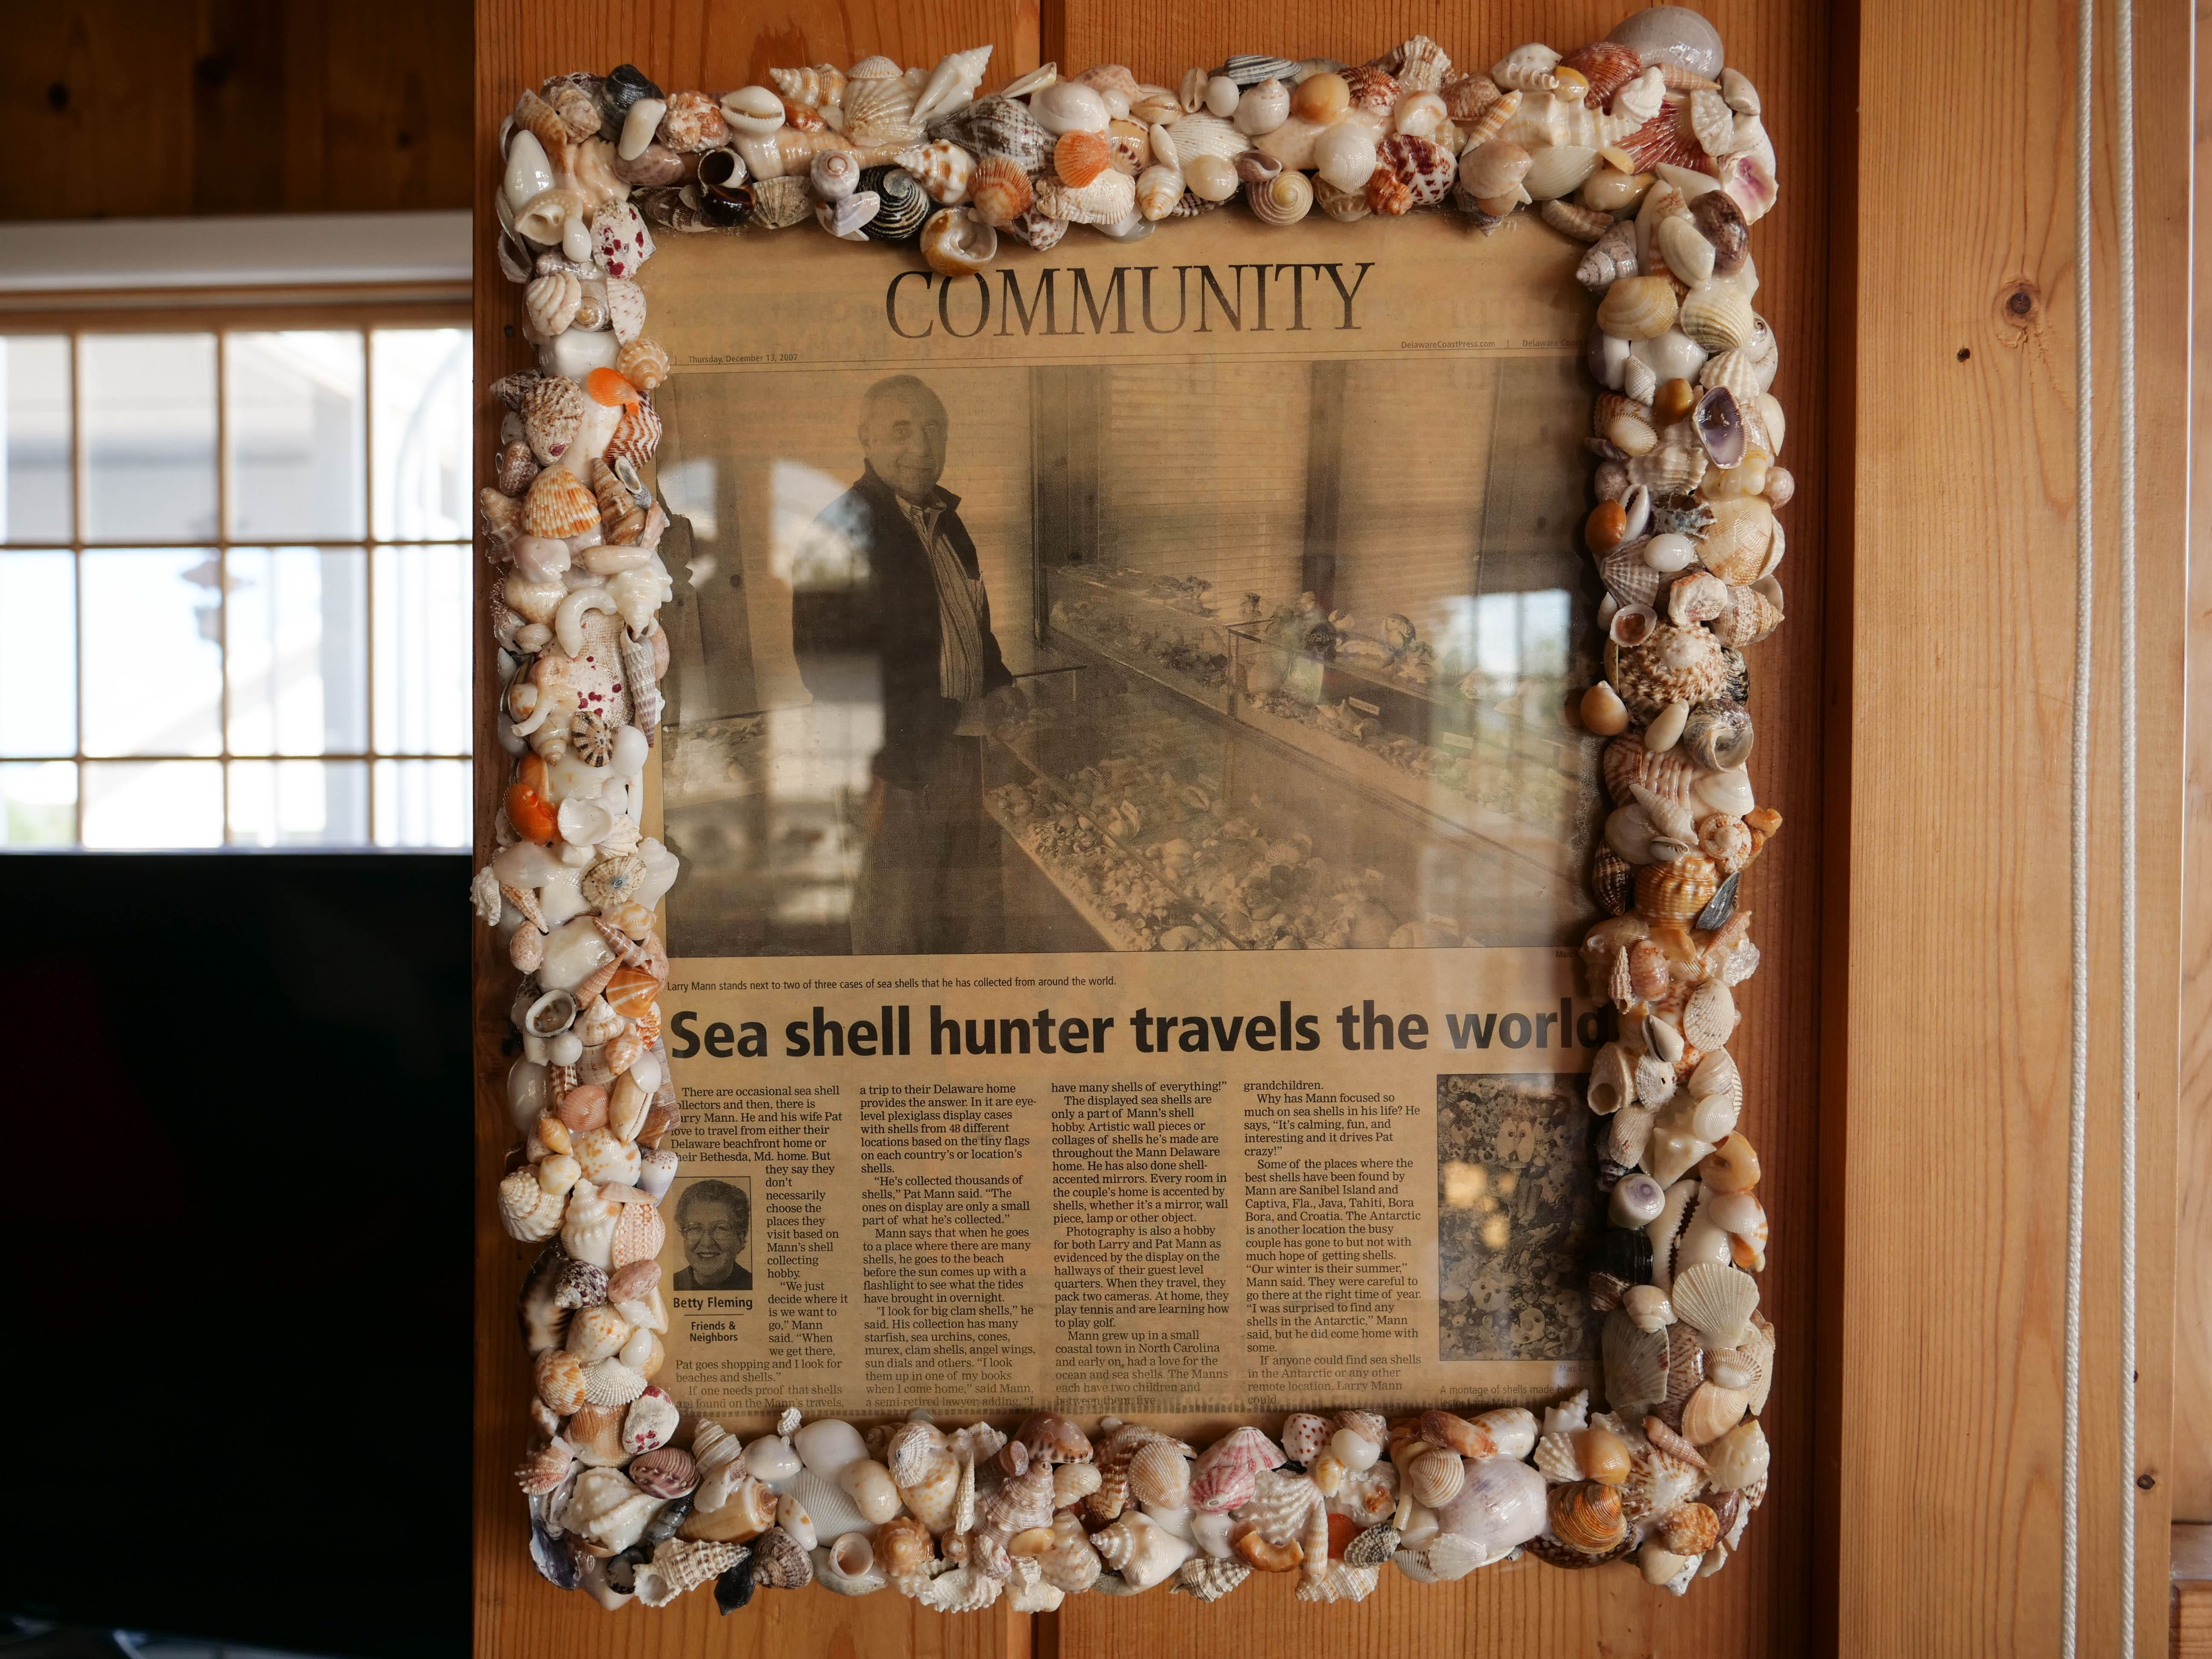 The Delaware Coast Press wrote about Larry Mann's seashell collection 10 years ago, when he'd traveled to a total of 48 locations. As of 2018, Mann has collected seashells from over 70 countries on all seven continents.